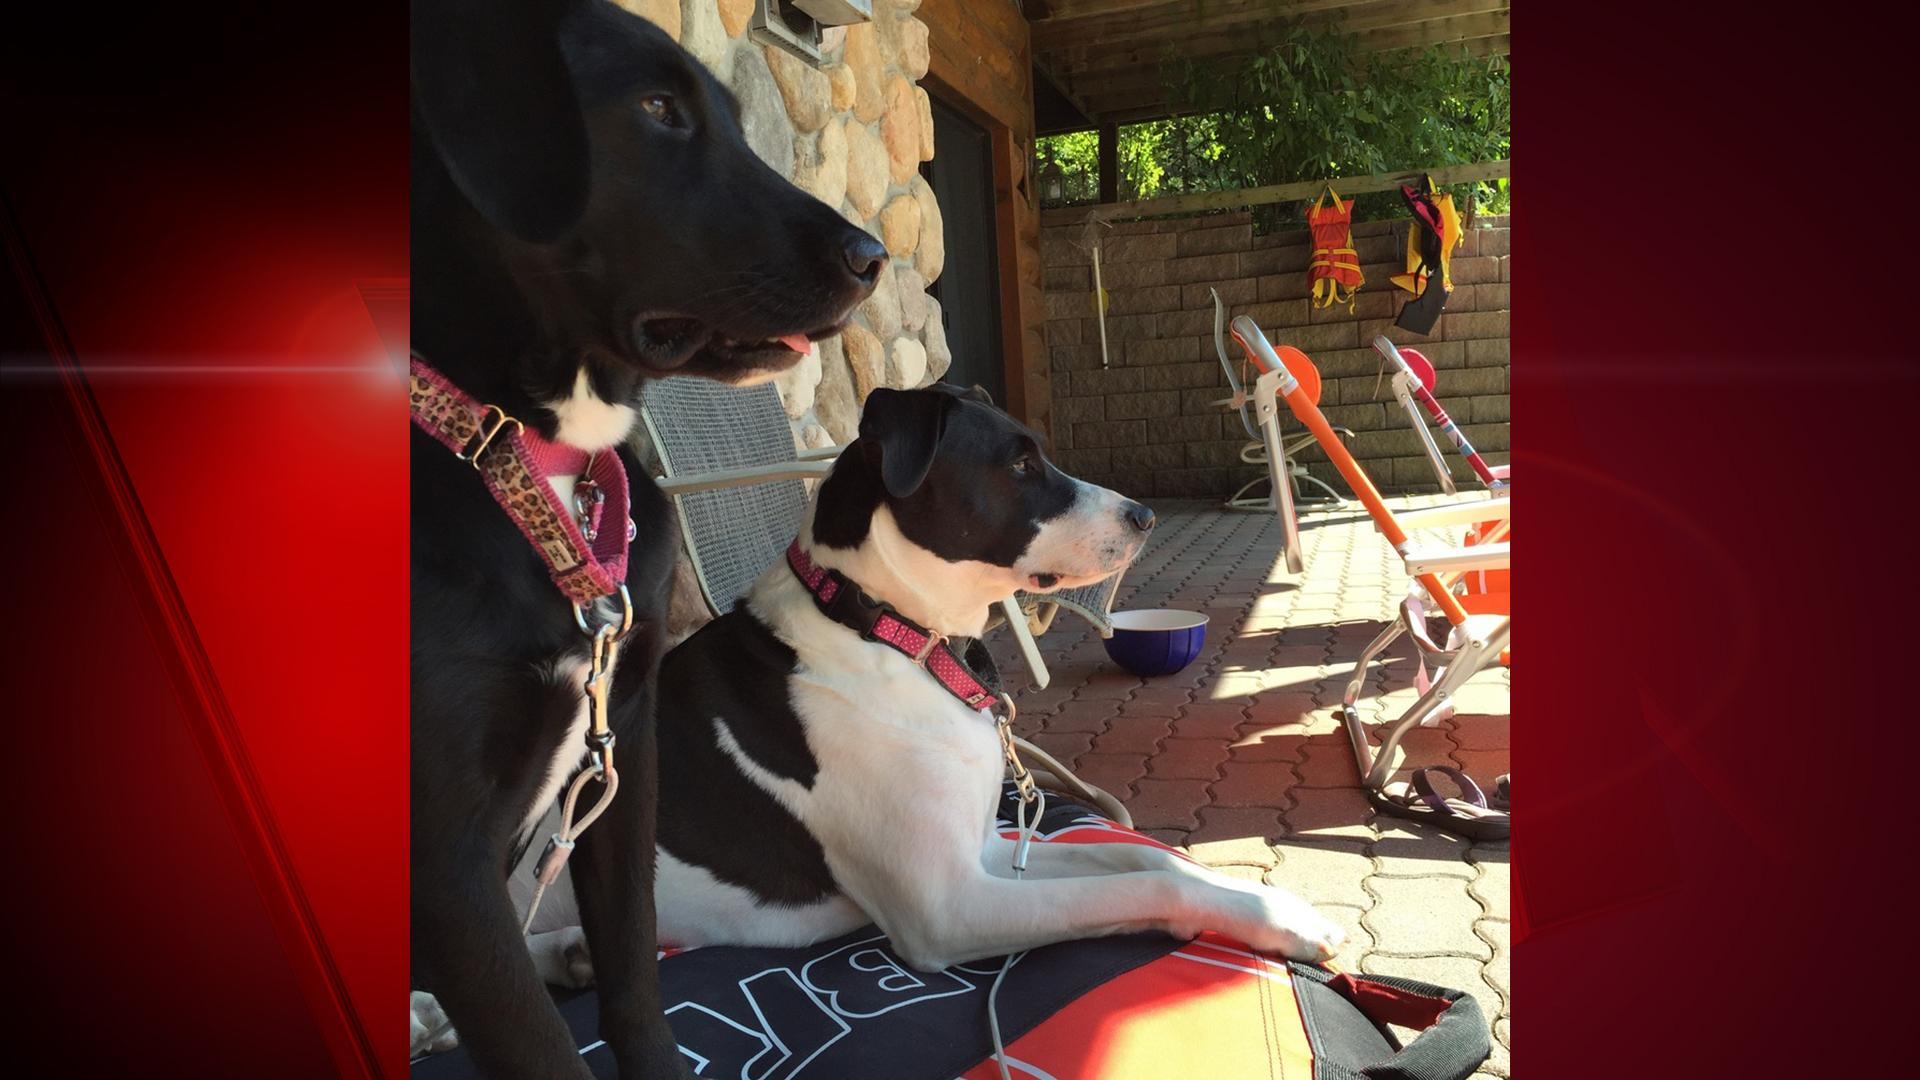 Meet FOX 11 news reporter, Eric Peterson's dogs. Ellie is a 3-year-old lab mix and Morgan is a 5-year-old hound terrier mix. (WLUK/Eric Peterson)